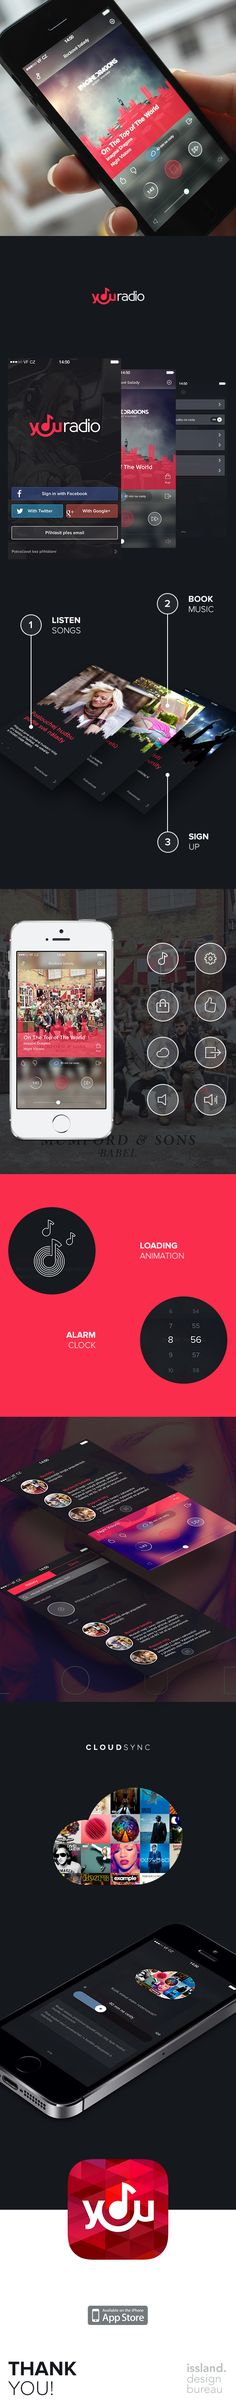 Youradio App by Christine Isslander, via Behance